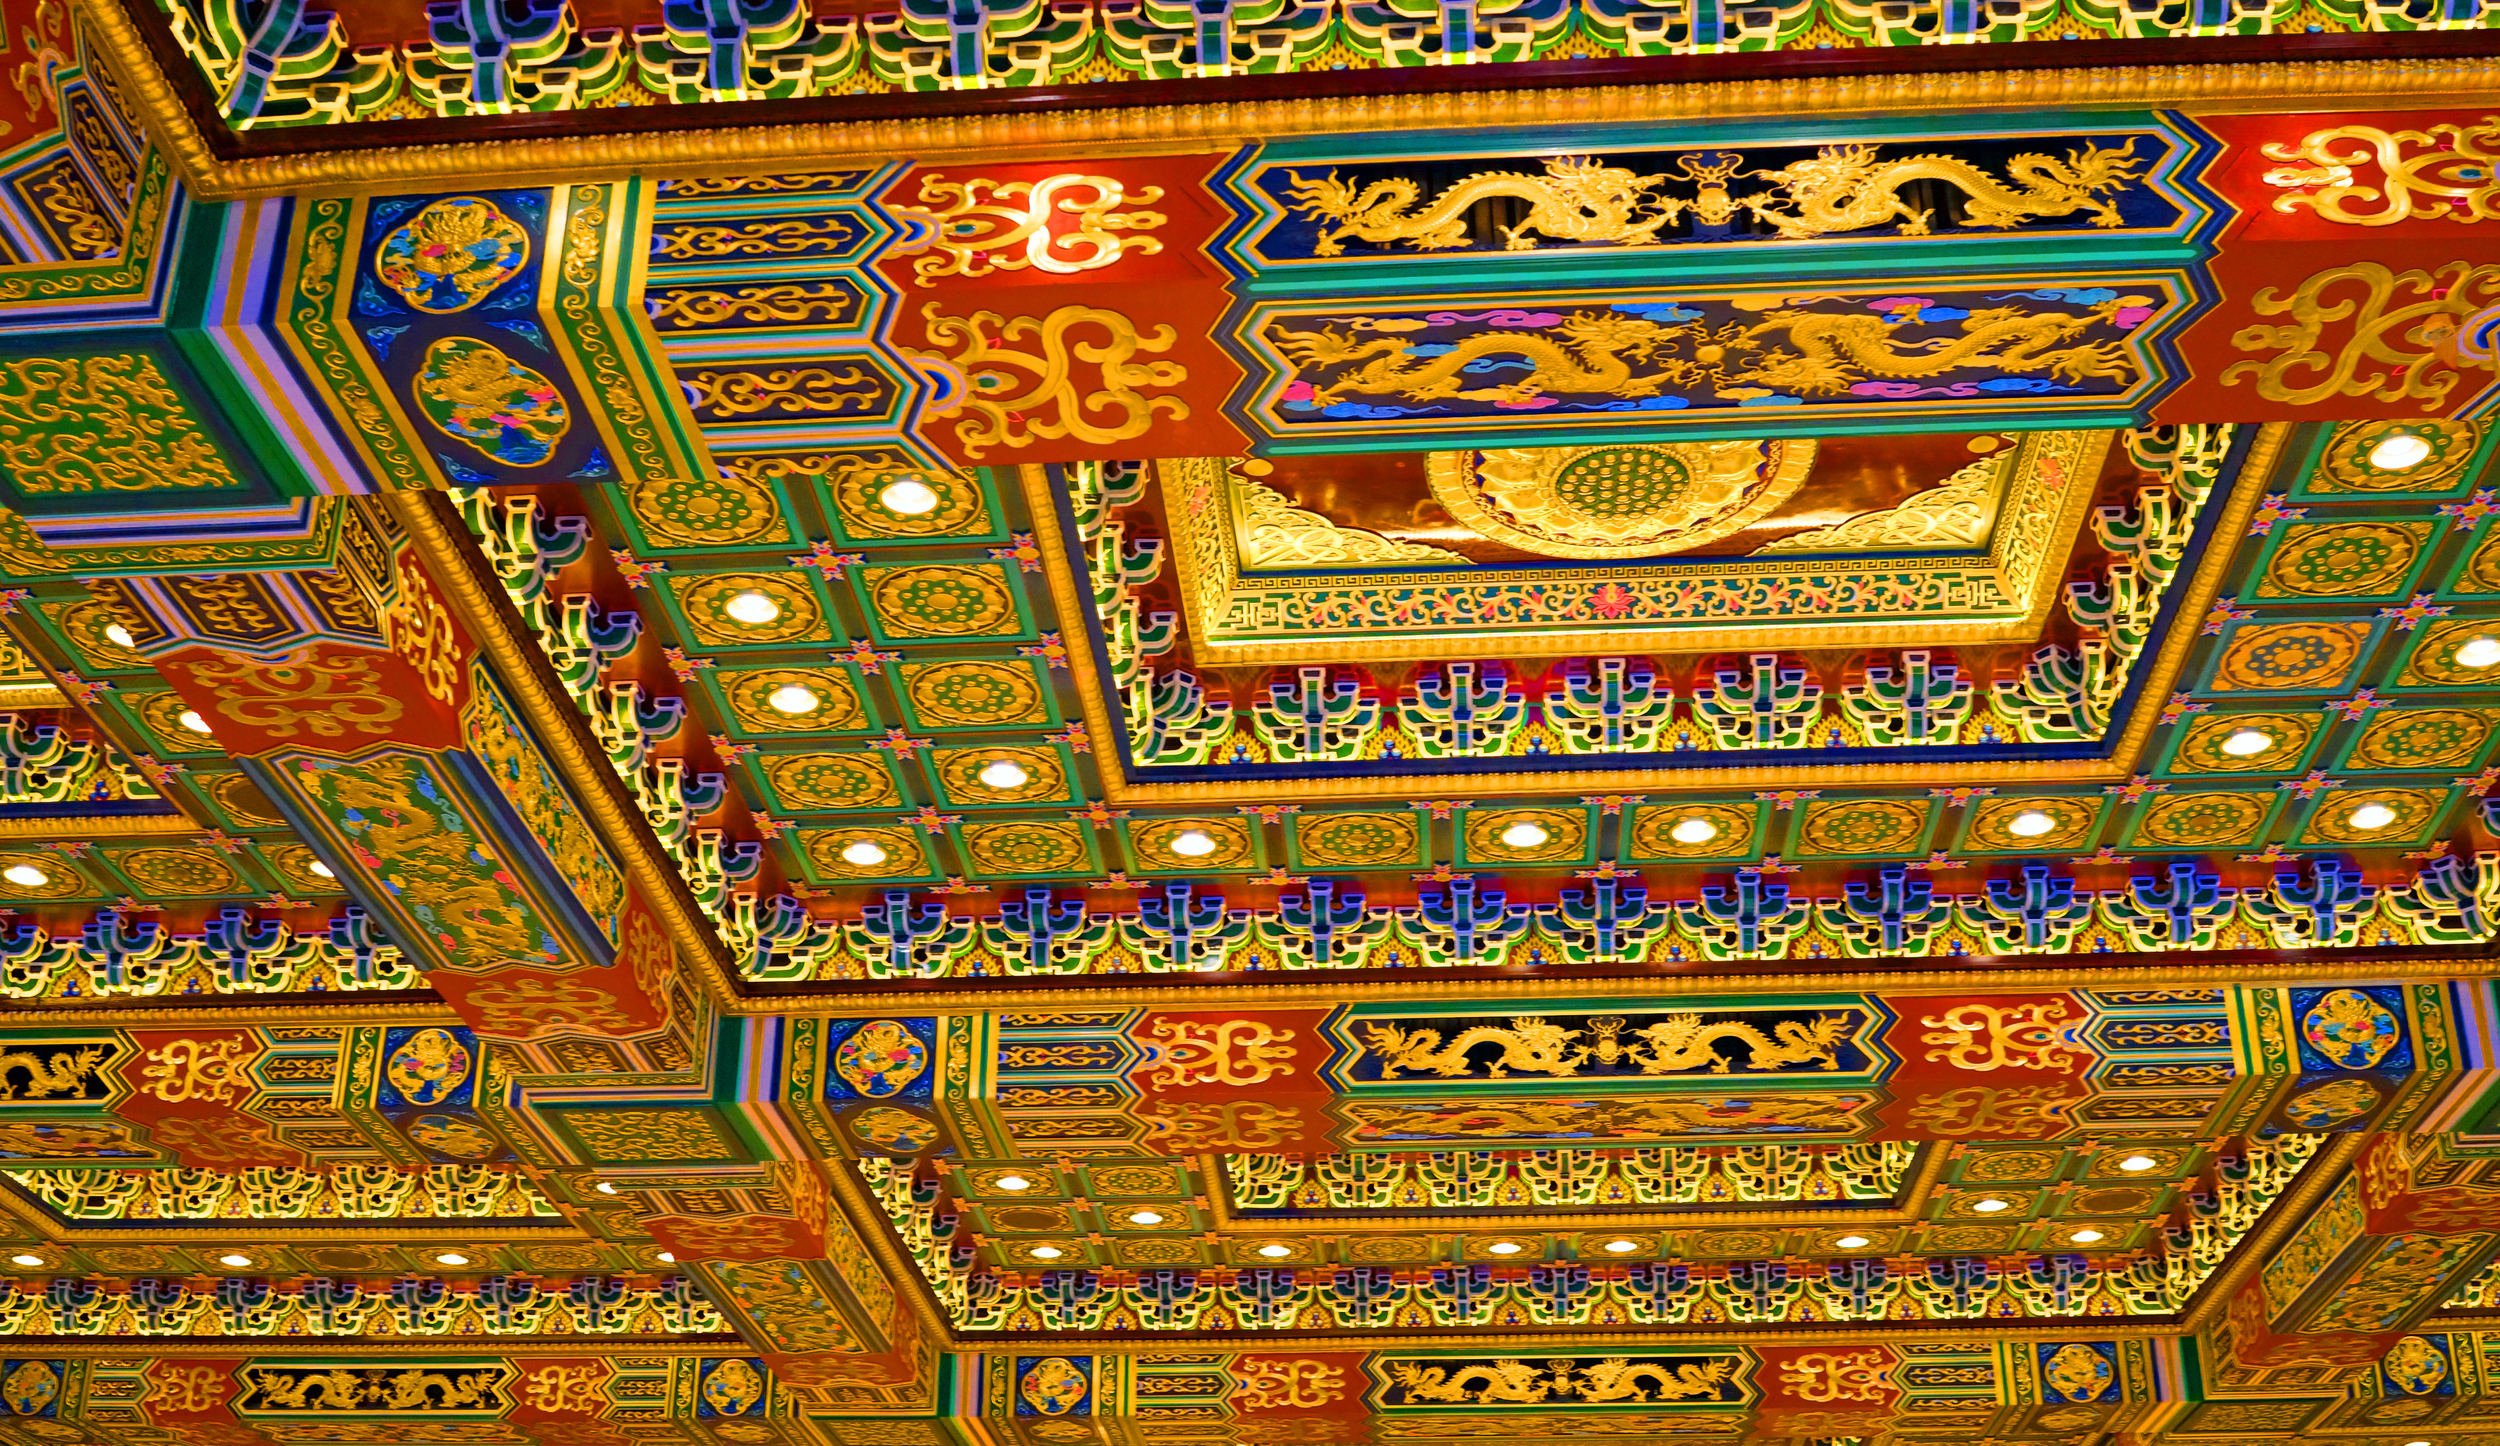 Oh my, the image does not do justice to the magnificent ceiling at the new Po Lin Monastery...